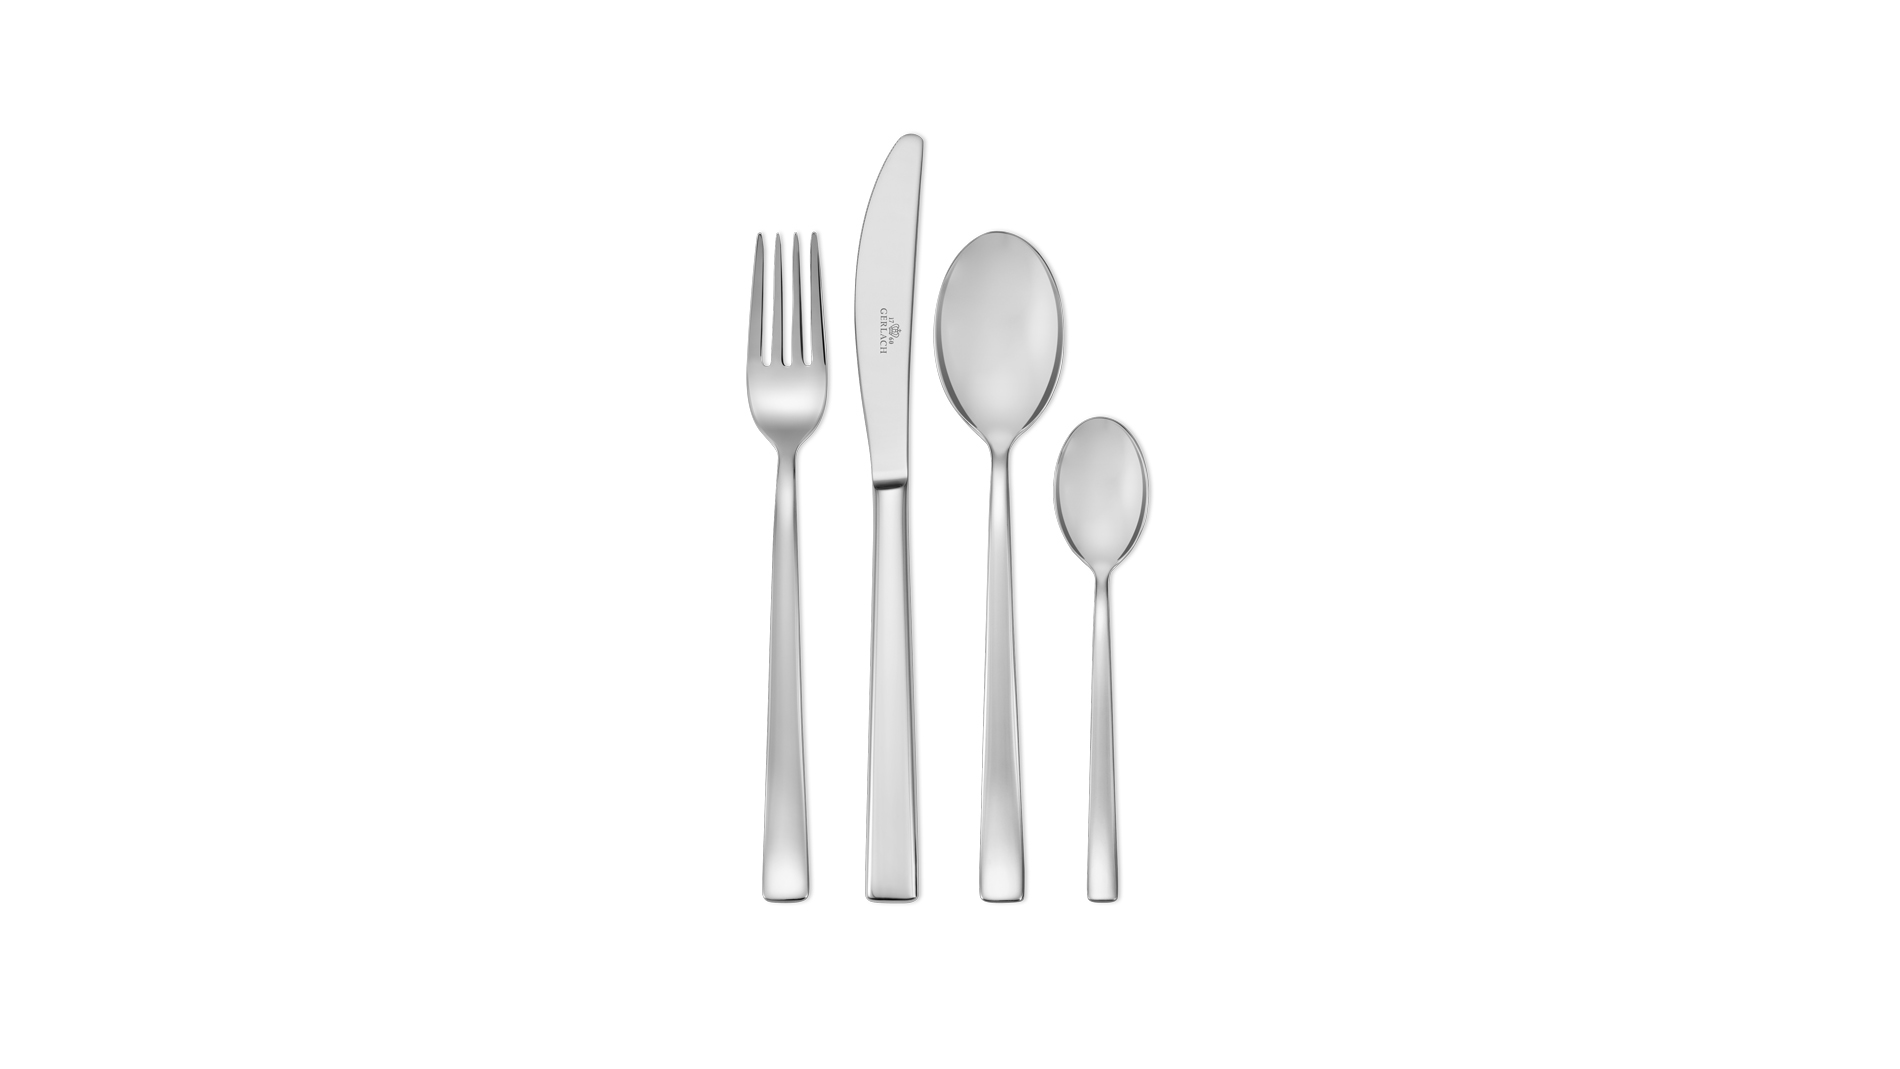 A set of Onda cutlery